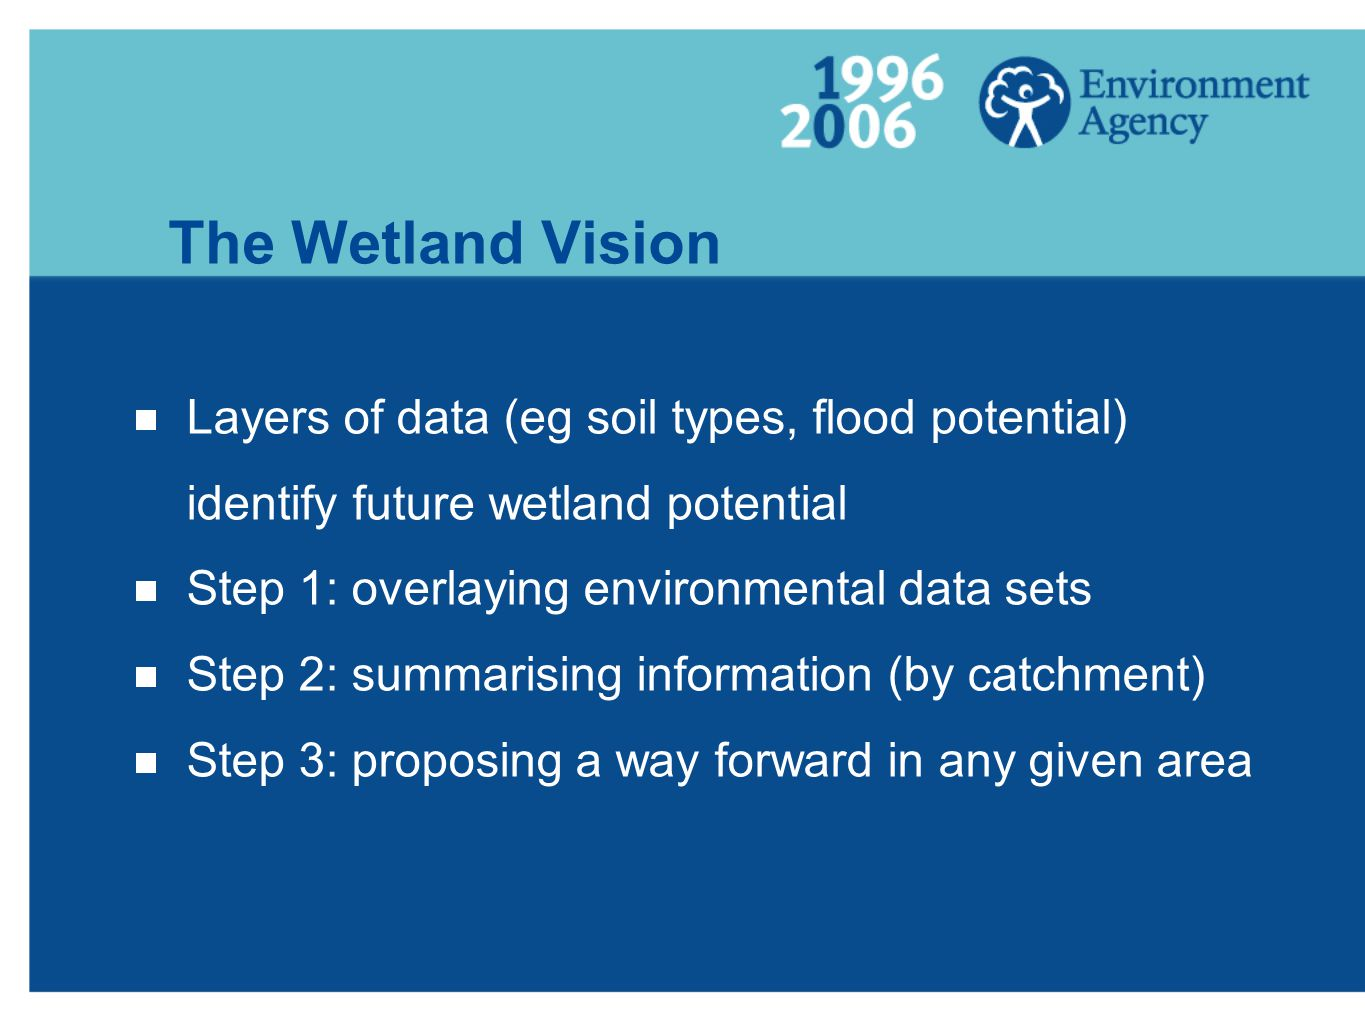 The Wetland Vision  Layers of data (eg soil types, flood potential) identify future wetland potential  Step 1: overlaying environmental data sets  Step 2: summarising information (by catchment)  Step 3: proposing a way forward in any given area